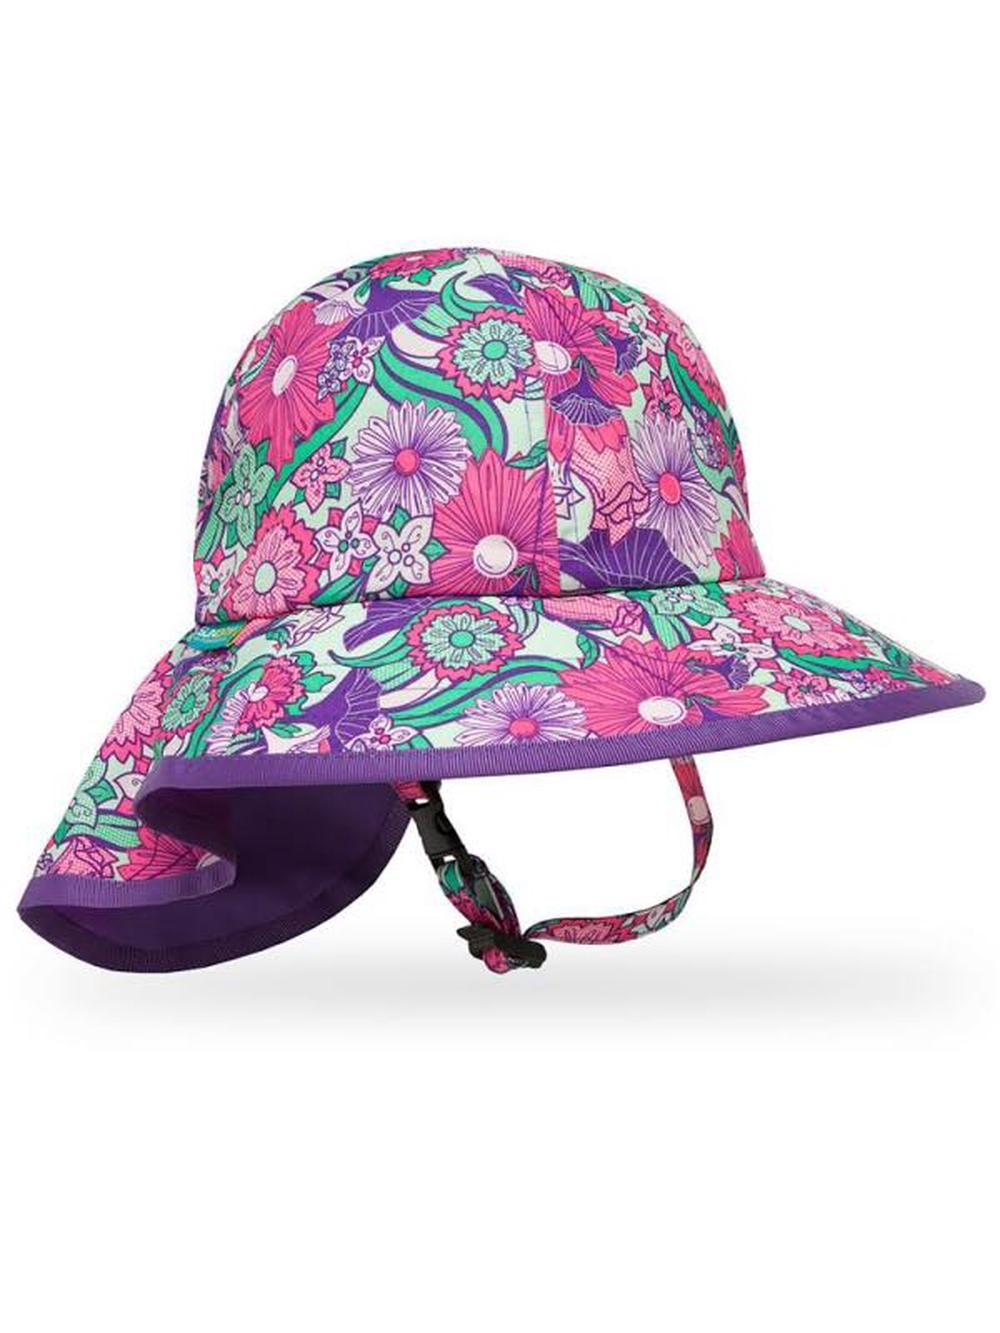 Sunday Afternoons Kids Play Hat (Flower Garden) - Medium